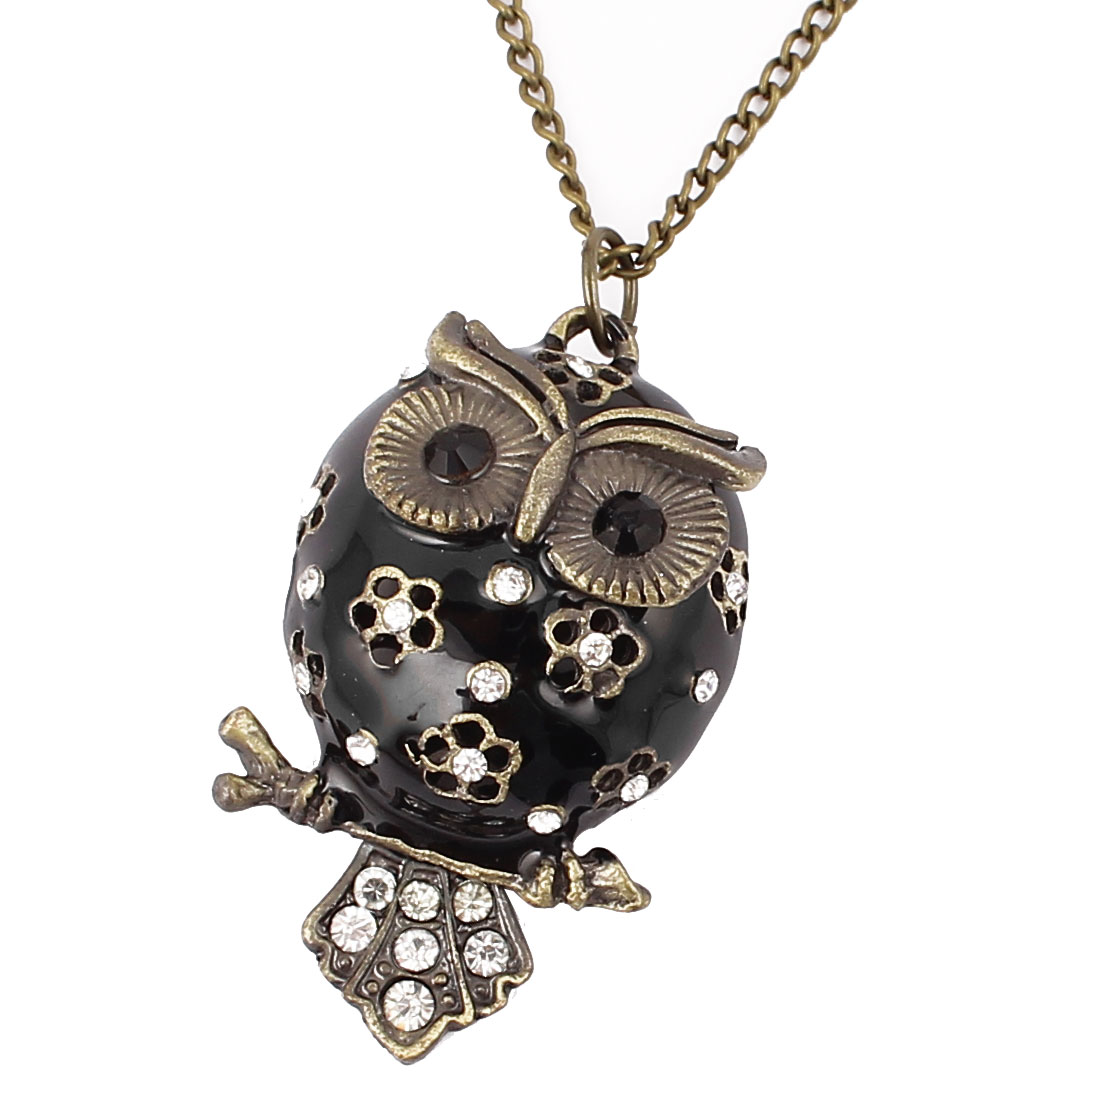 Women Fashion Jewelry Vintage Style Rhinestone Owl Pendant Necklace Bronze Tone Black